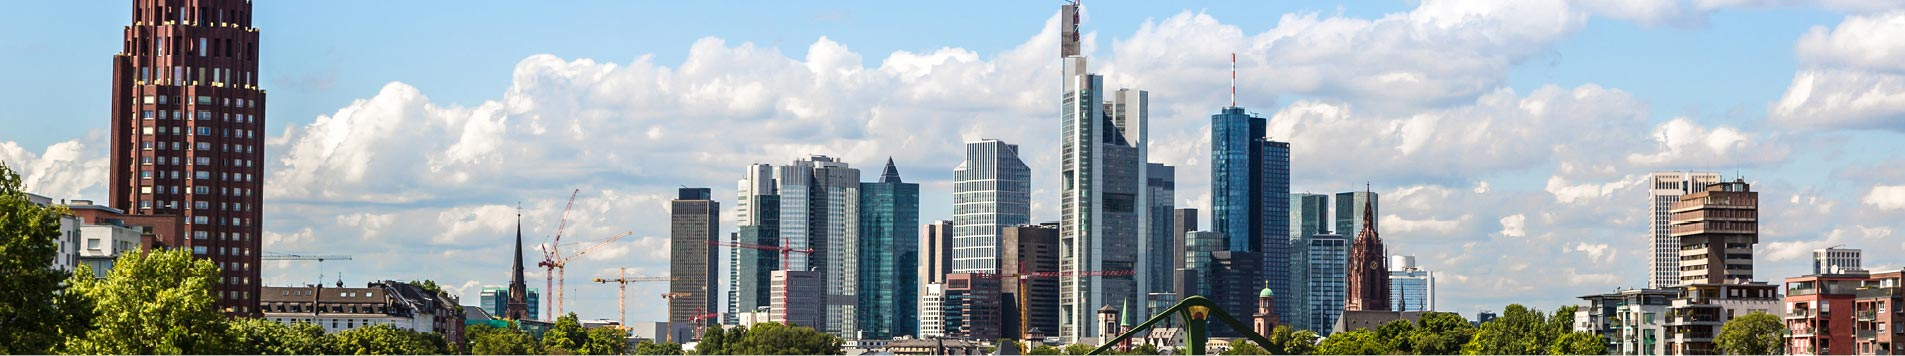 M&A-Kommunikation - Mergers & Acquisitions Frankfurt am Main